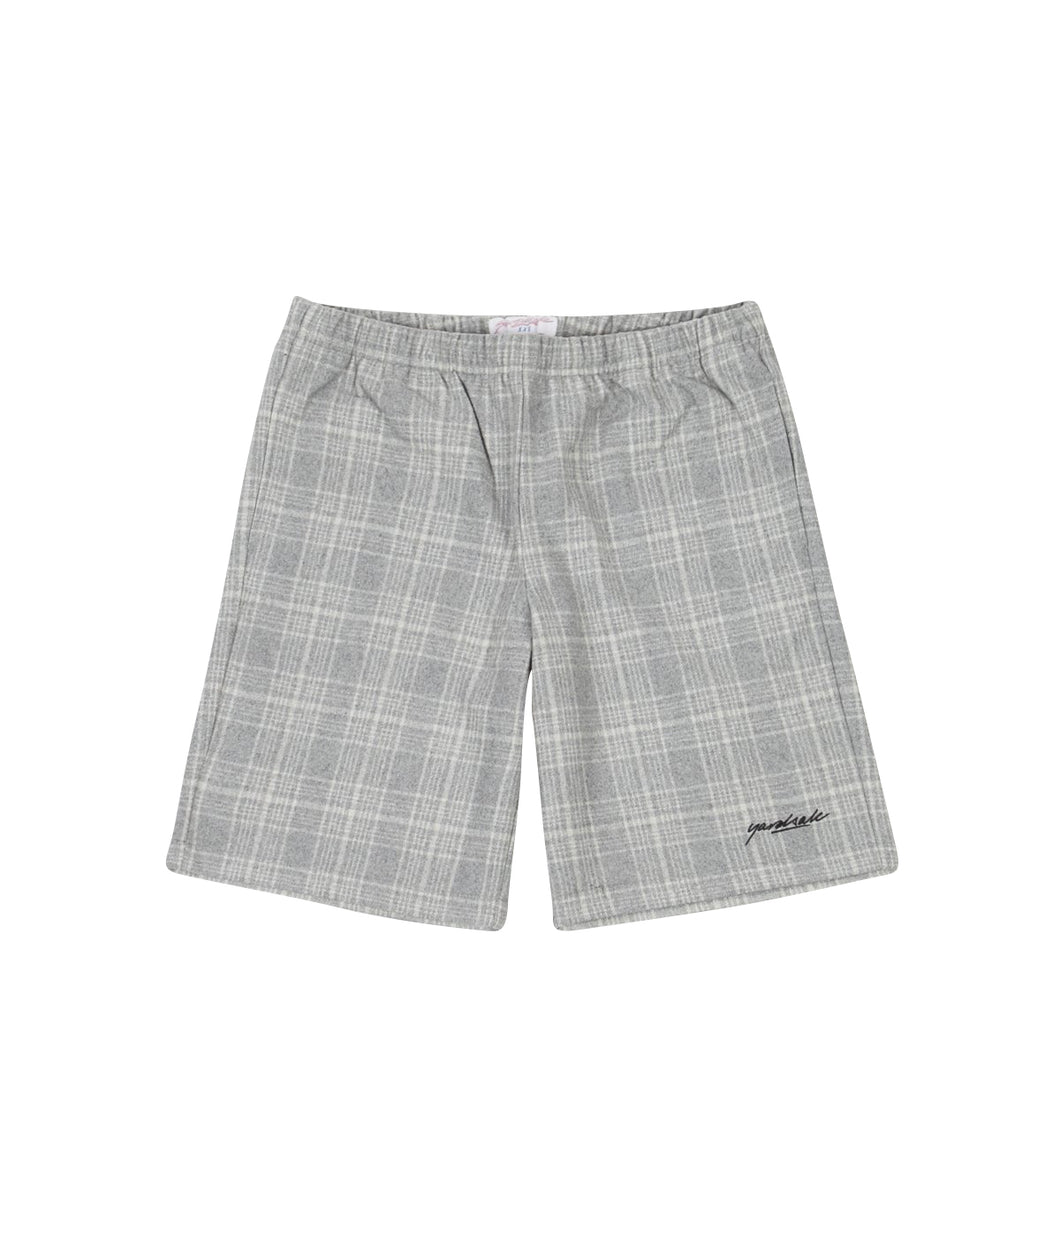 Flannel Shorts (Grey/White)